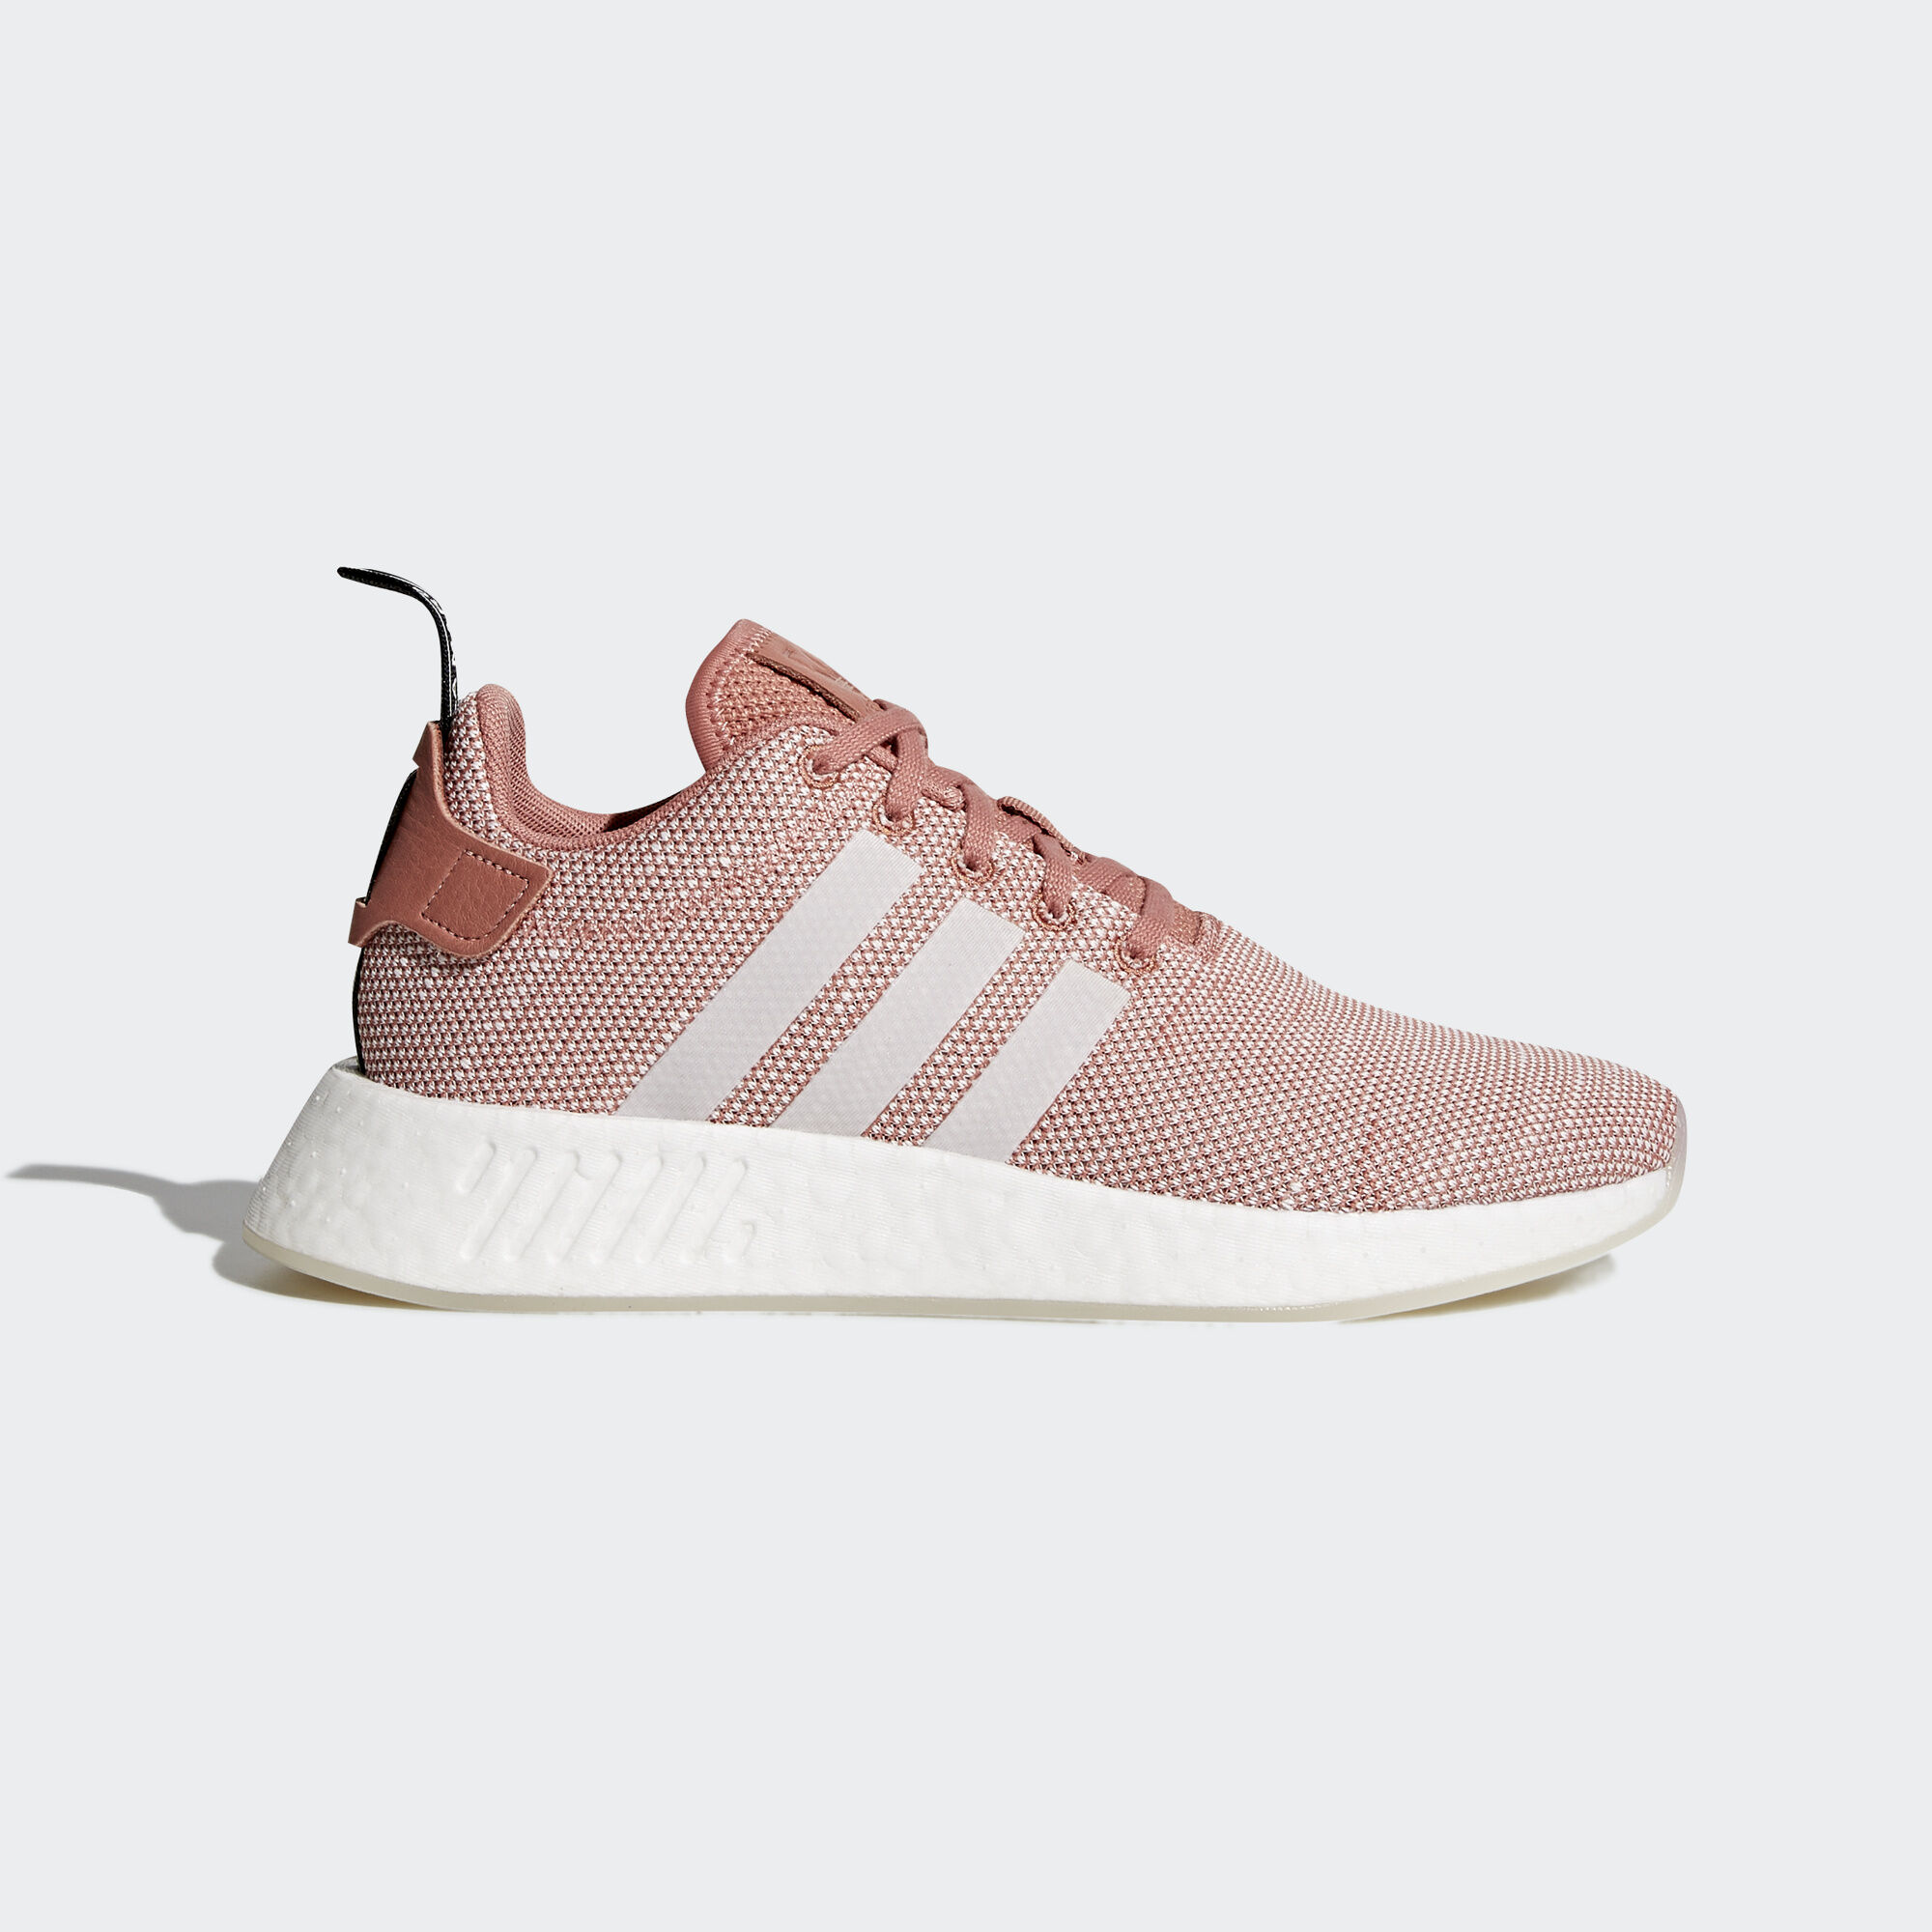 adidas - NMD_R2 Shoes Ash Pink/Crystal White/Ftwr White CQ2007